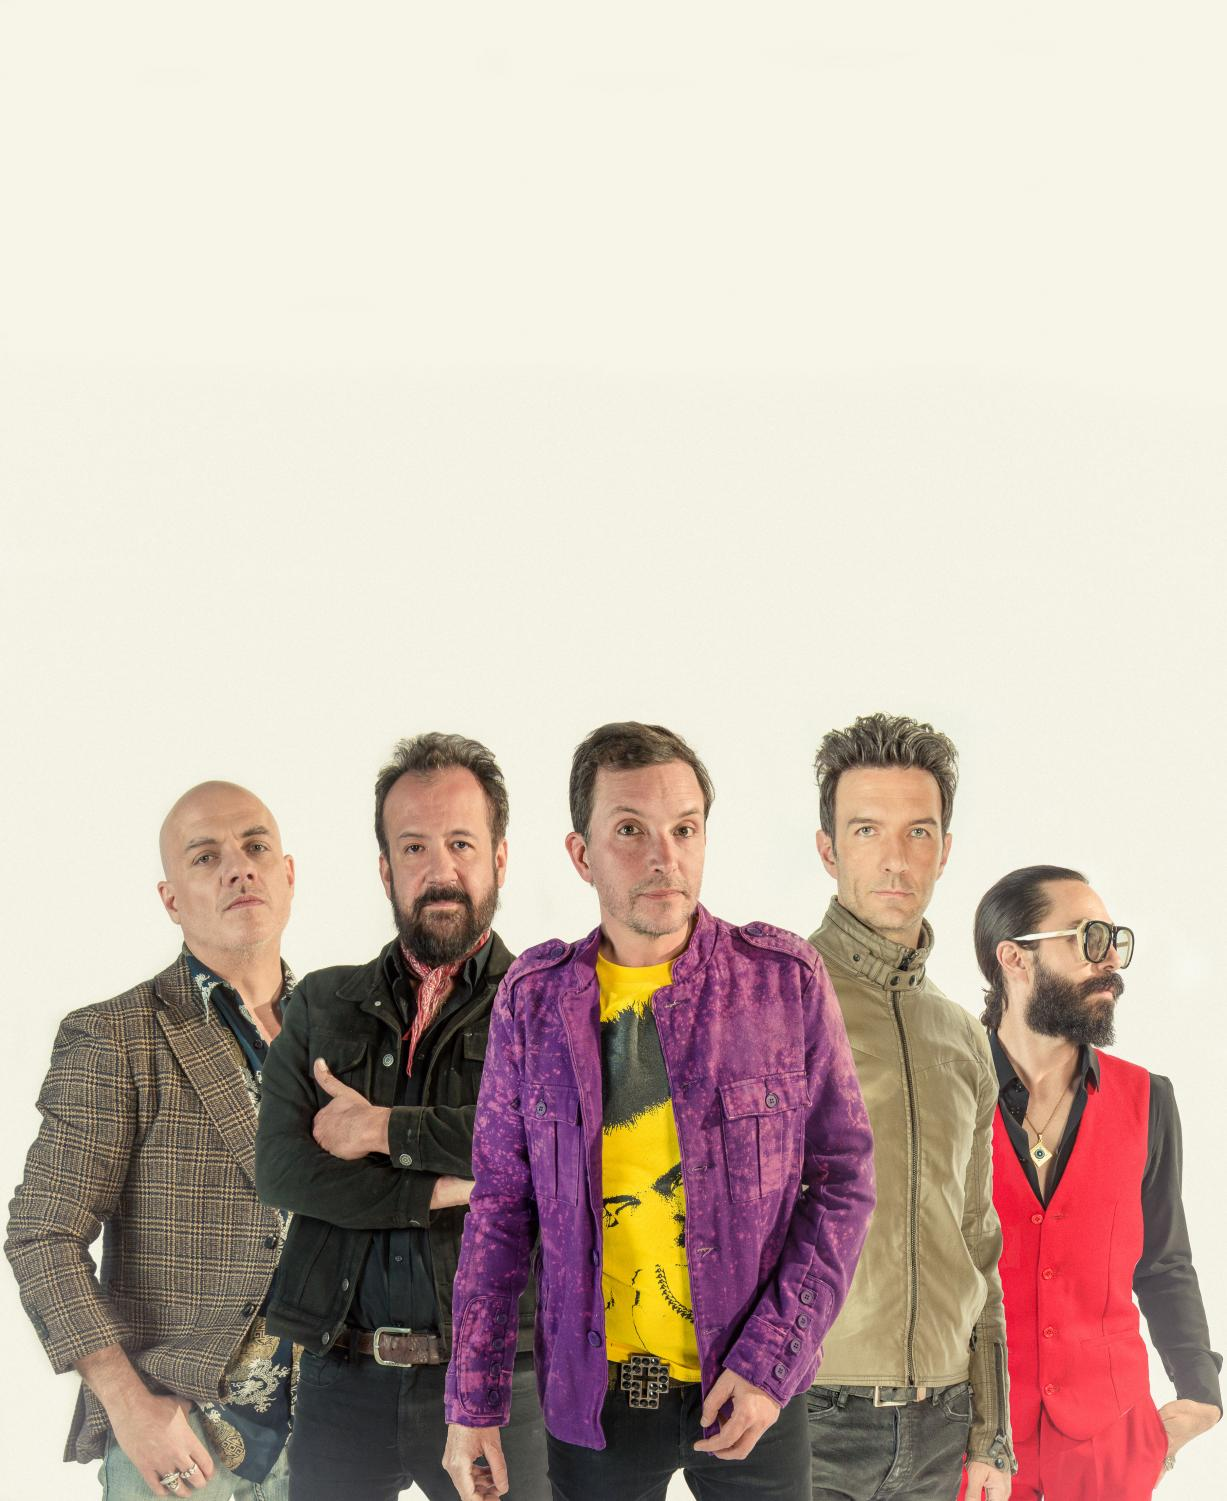 Band members of Fobia. Since their first album in 1990, the band is a pioneer in the scene of Mexican Latin Alternative bands coming from Latin America. Photo Credit: Courtesy of the band.